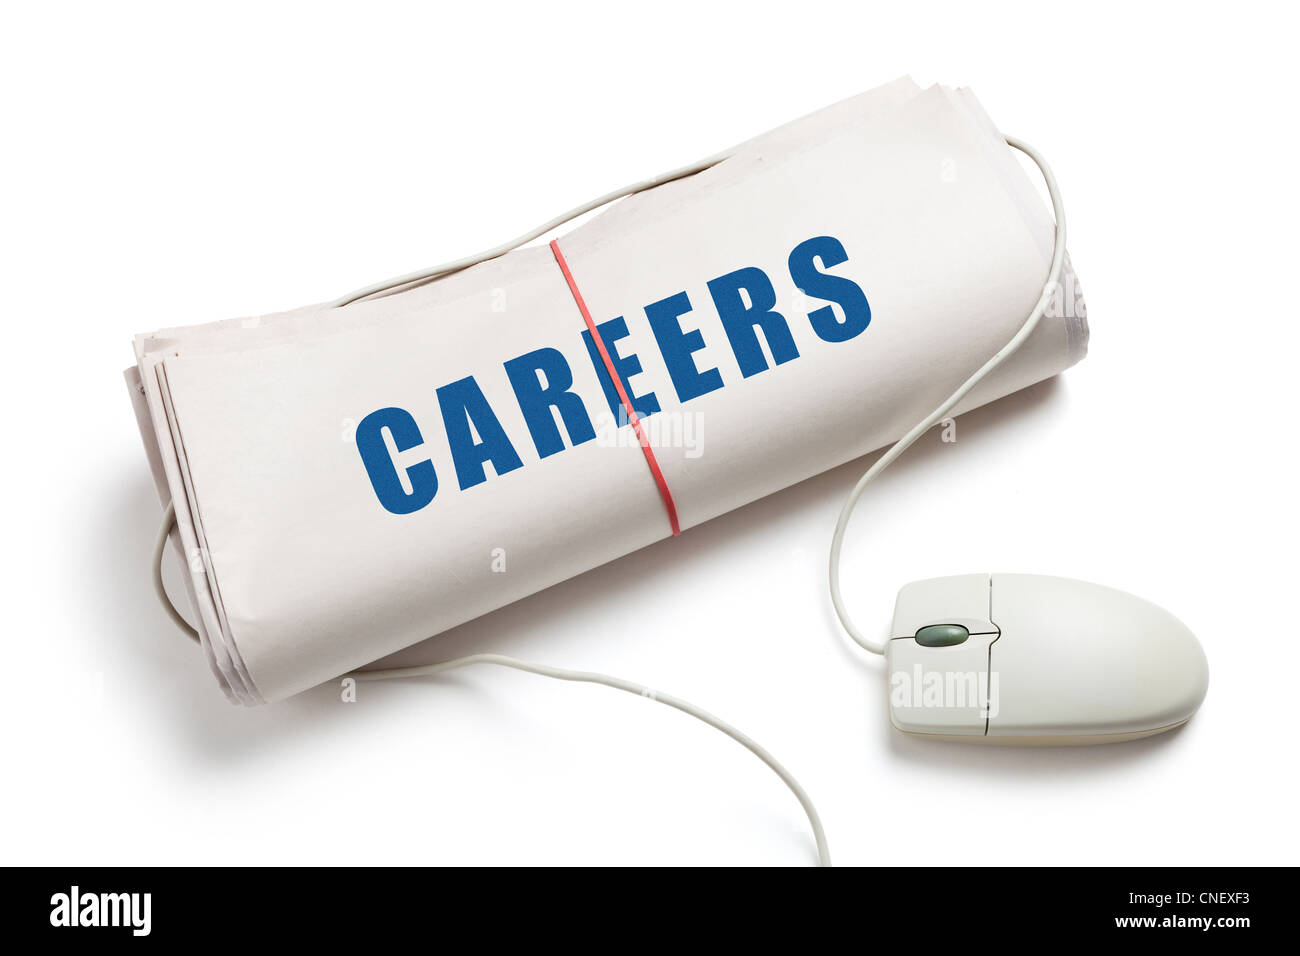 Careers, Computer mouse and Newspaper Roll with white background - Stock Image